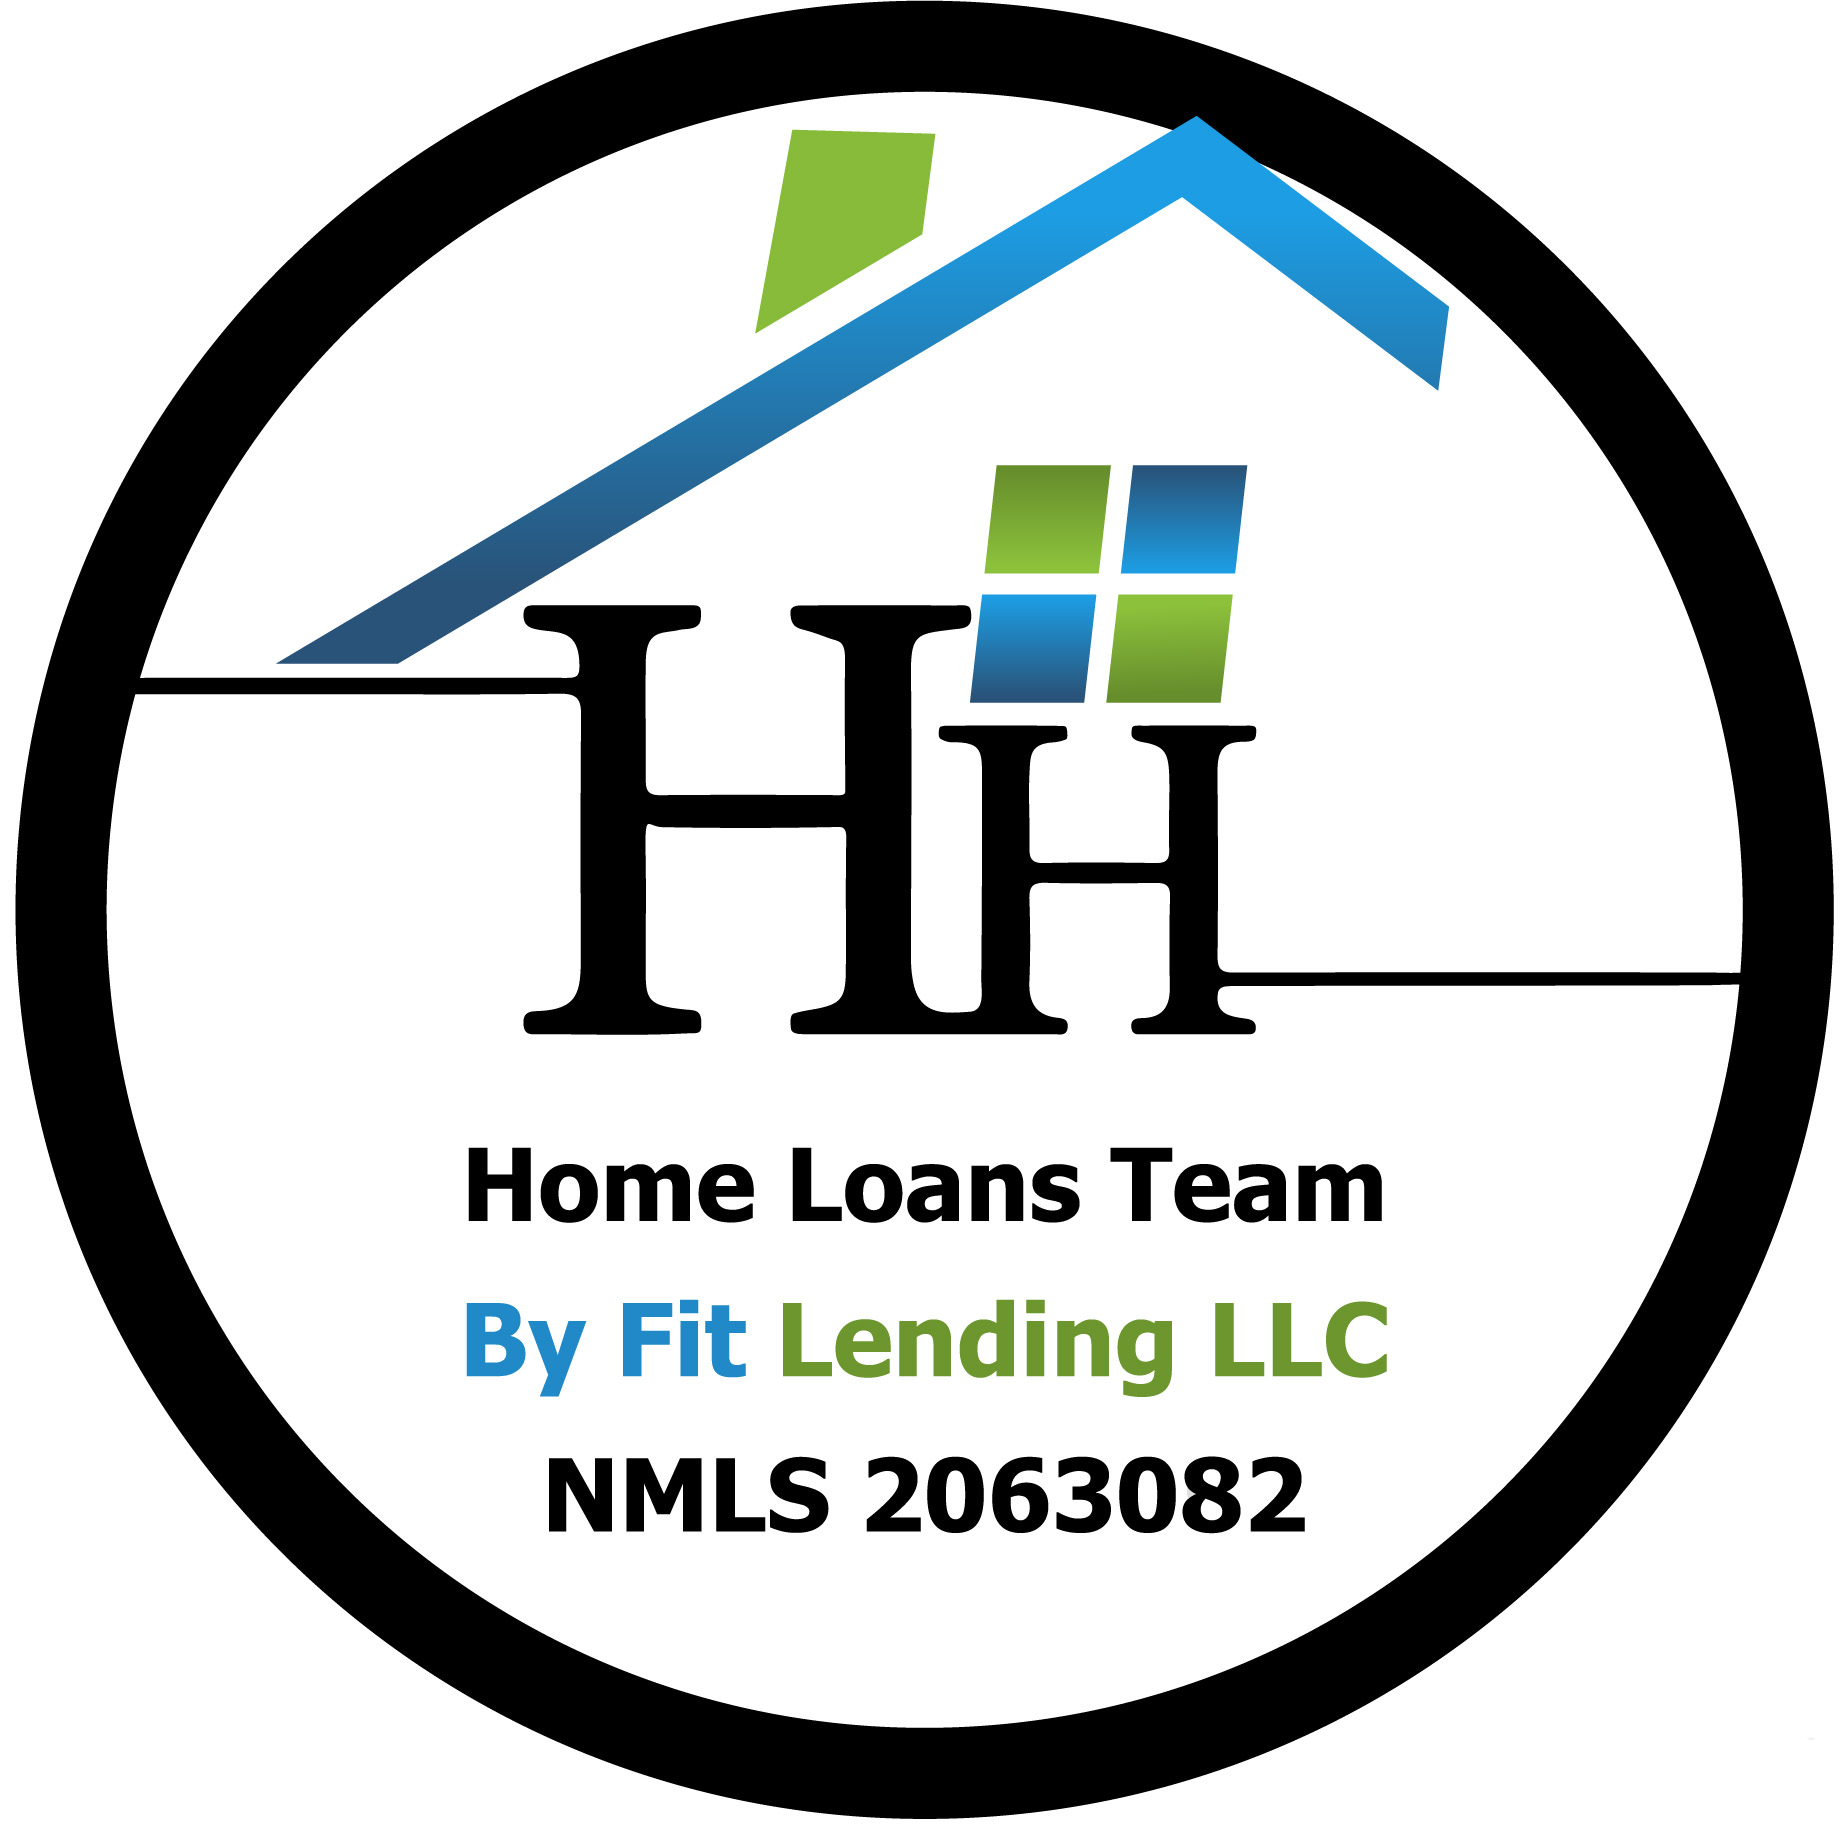 Double H Home Loans Team by Fit Lending logo